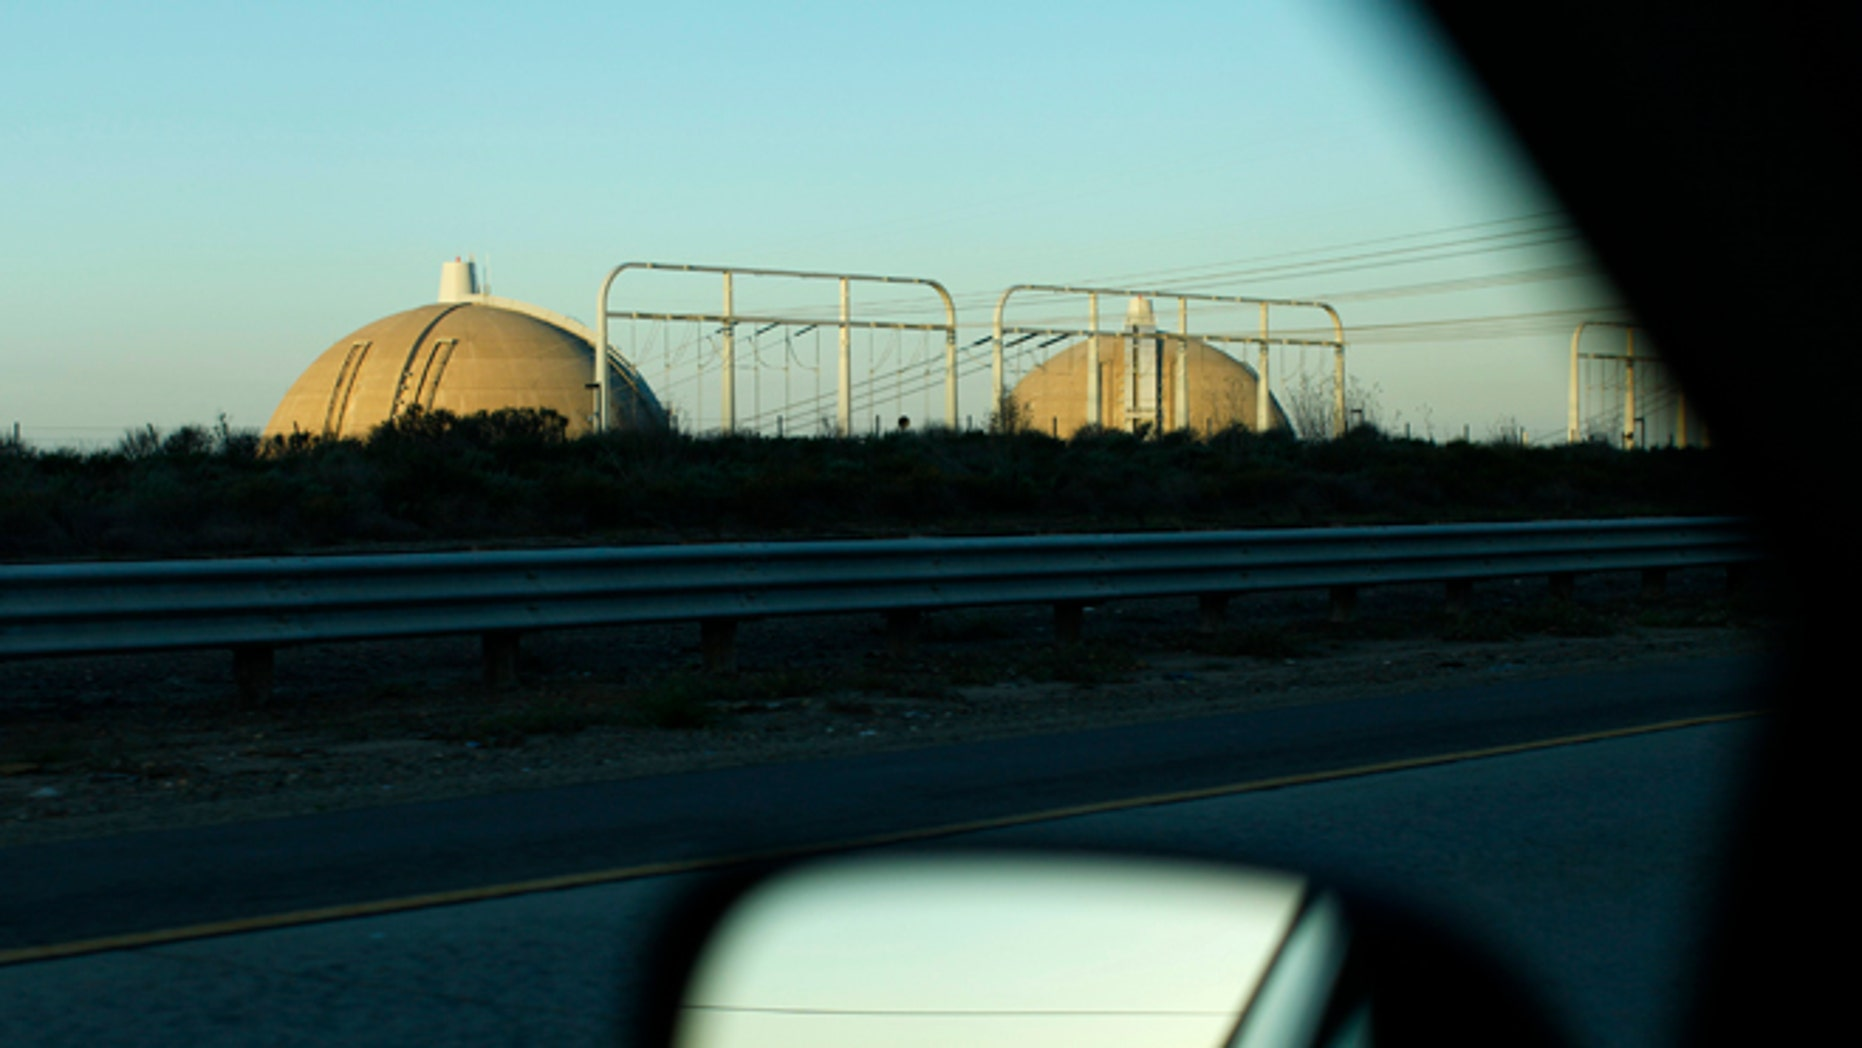 February 23, 2013: The San Onofre Nuclear Generating Station is seen from a car driving along Interstate 5, north of San Diego County near San Clemente, California.